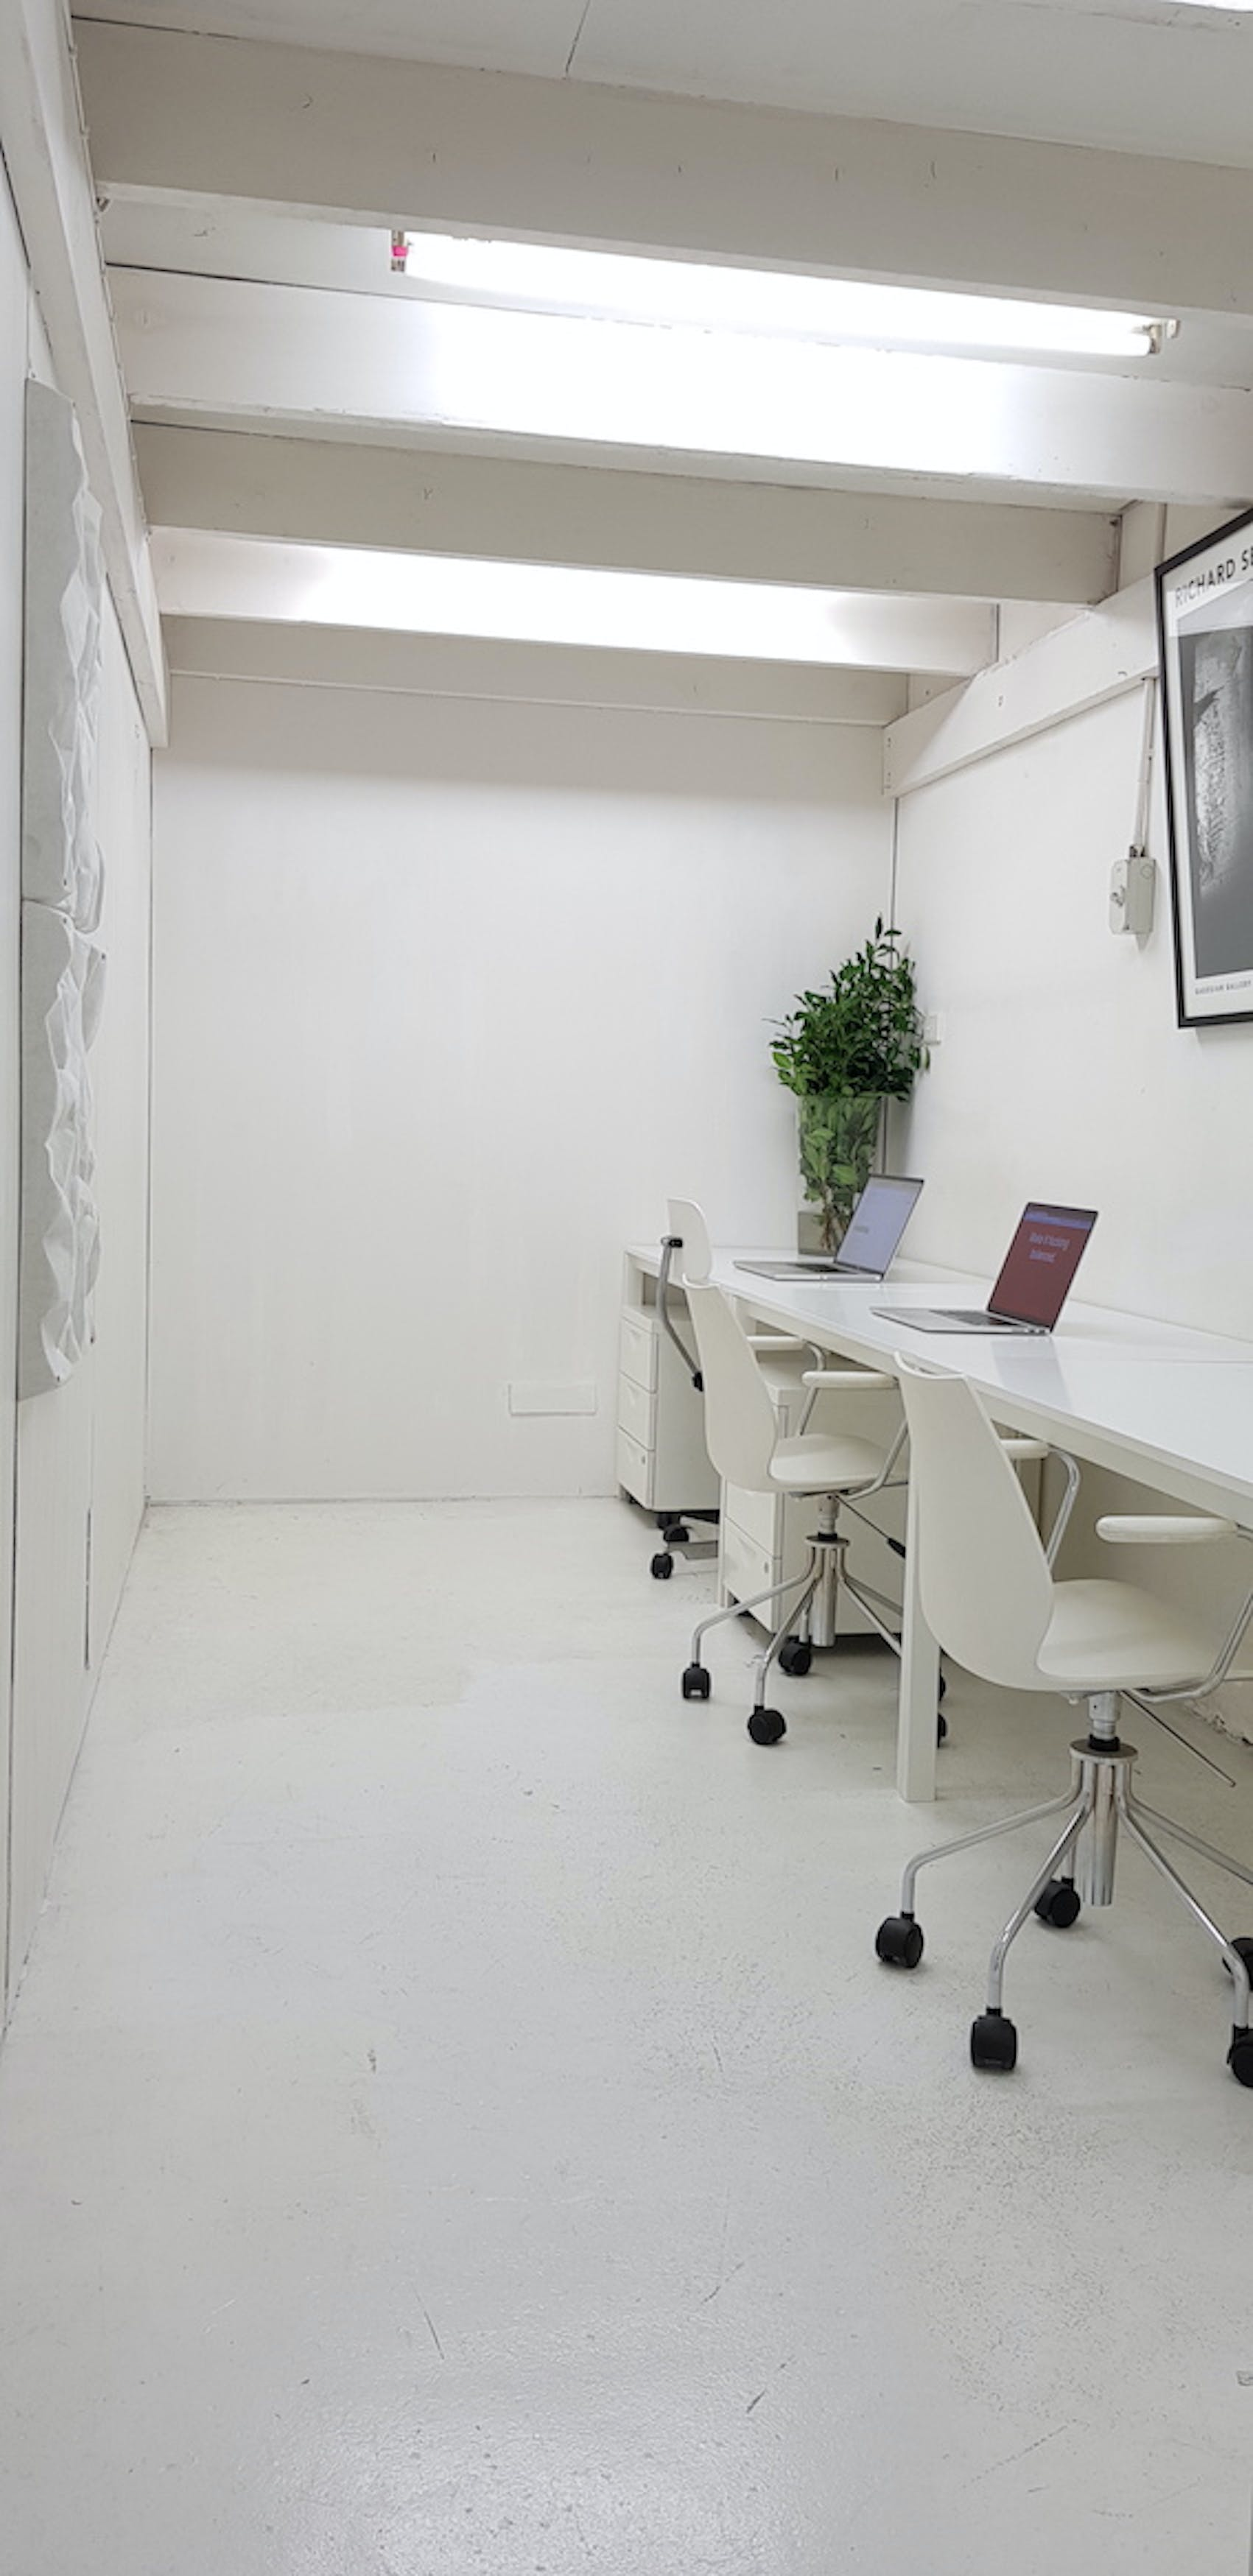 Private Office 3-4 person, private office at Independent Studios, image 1